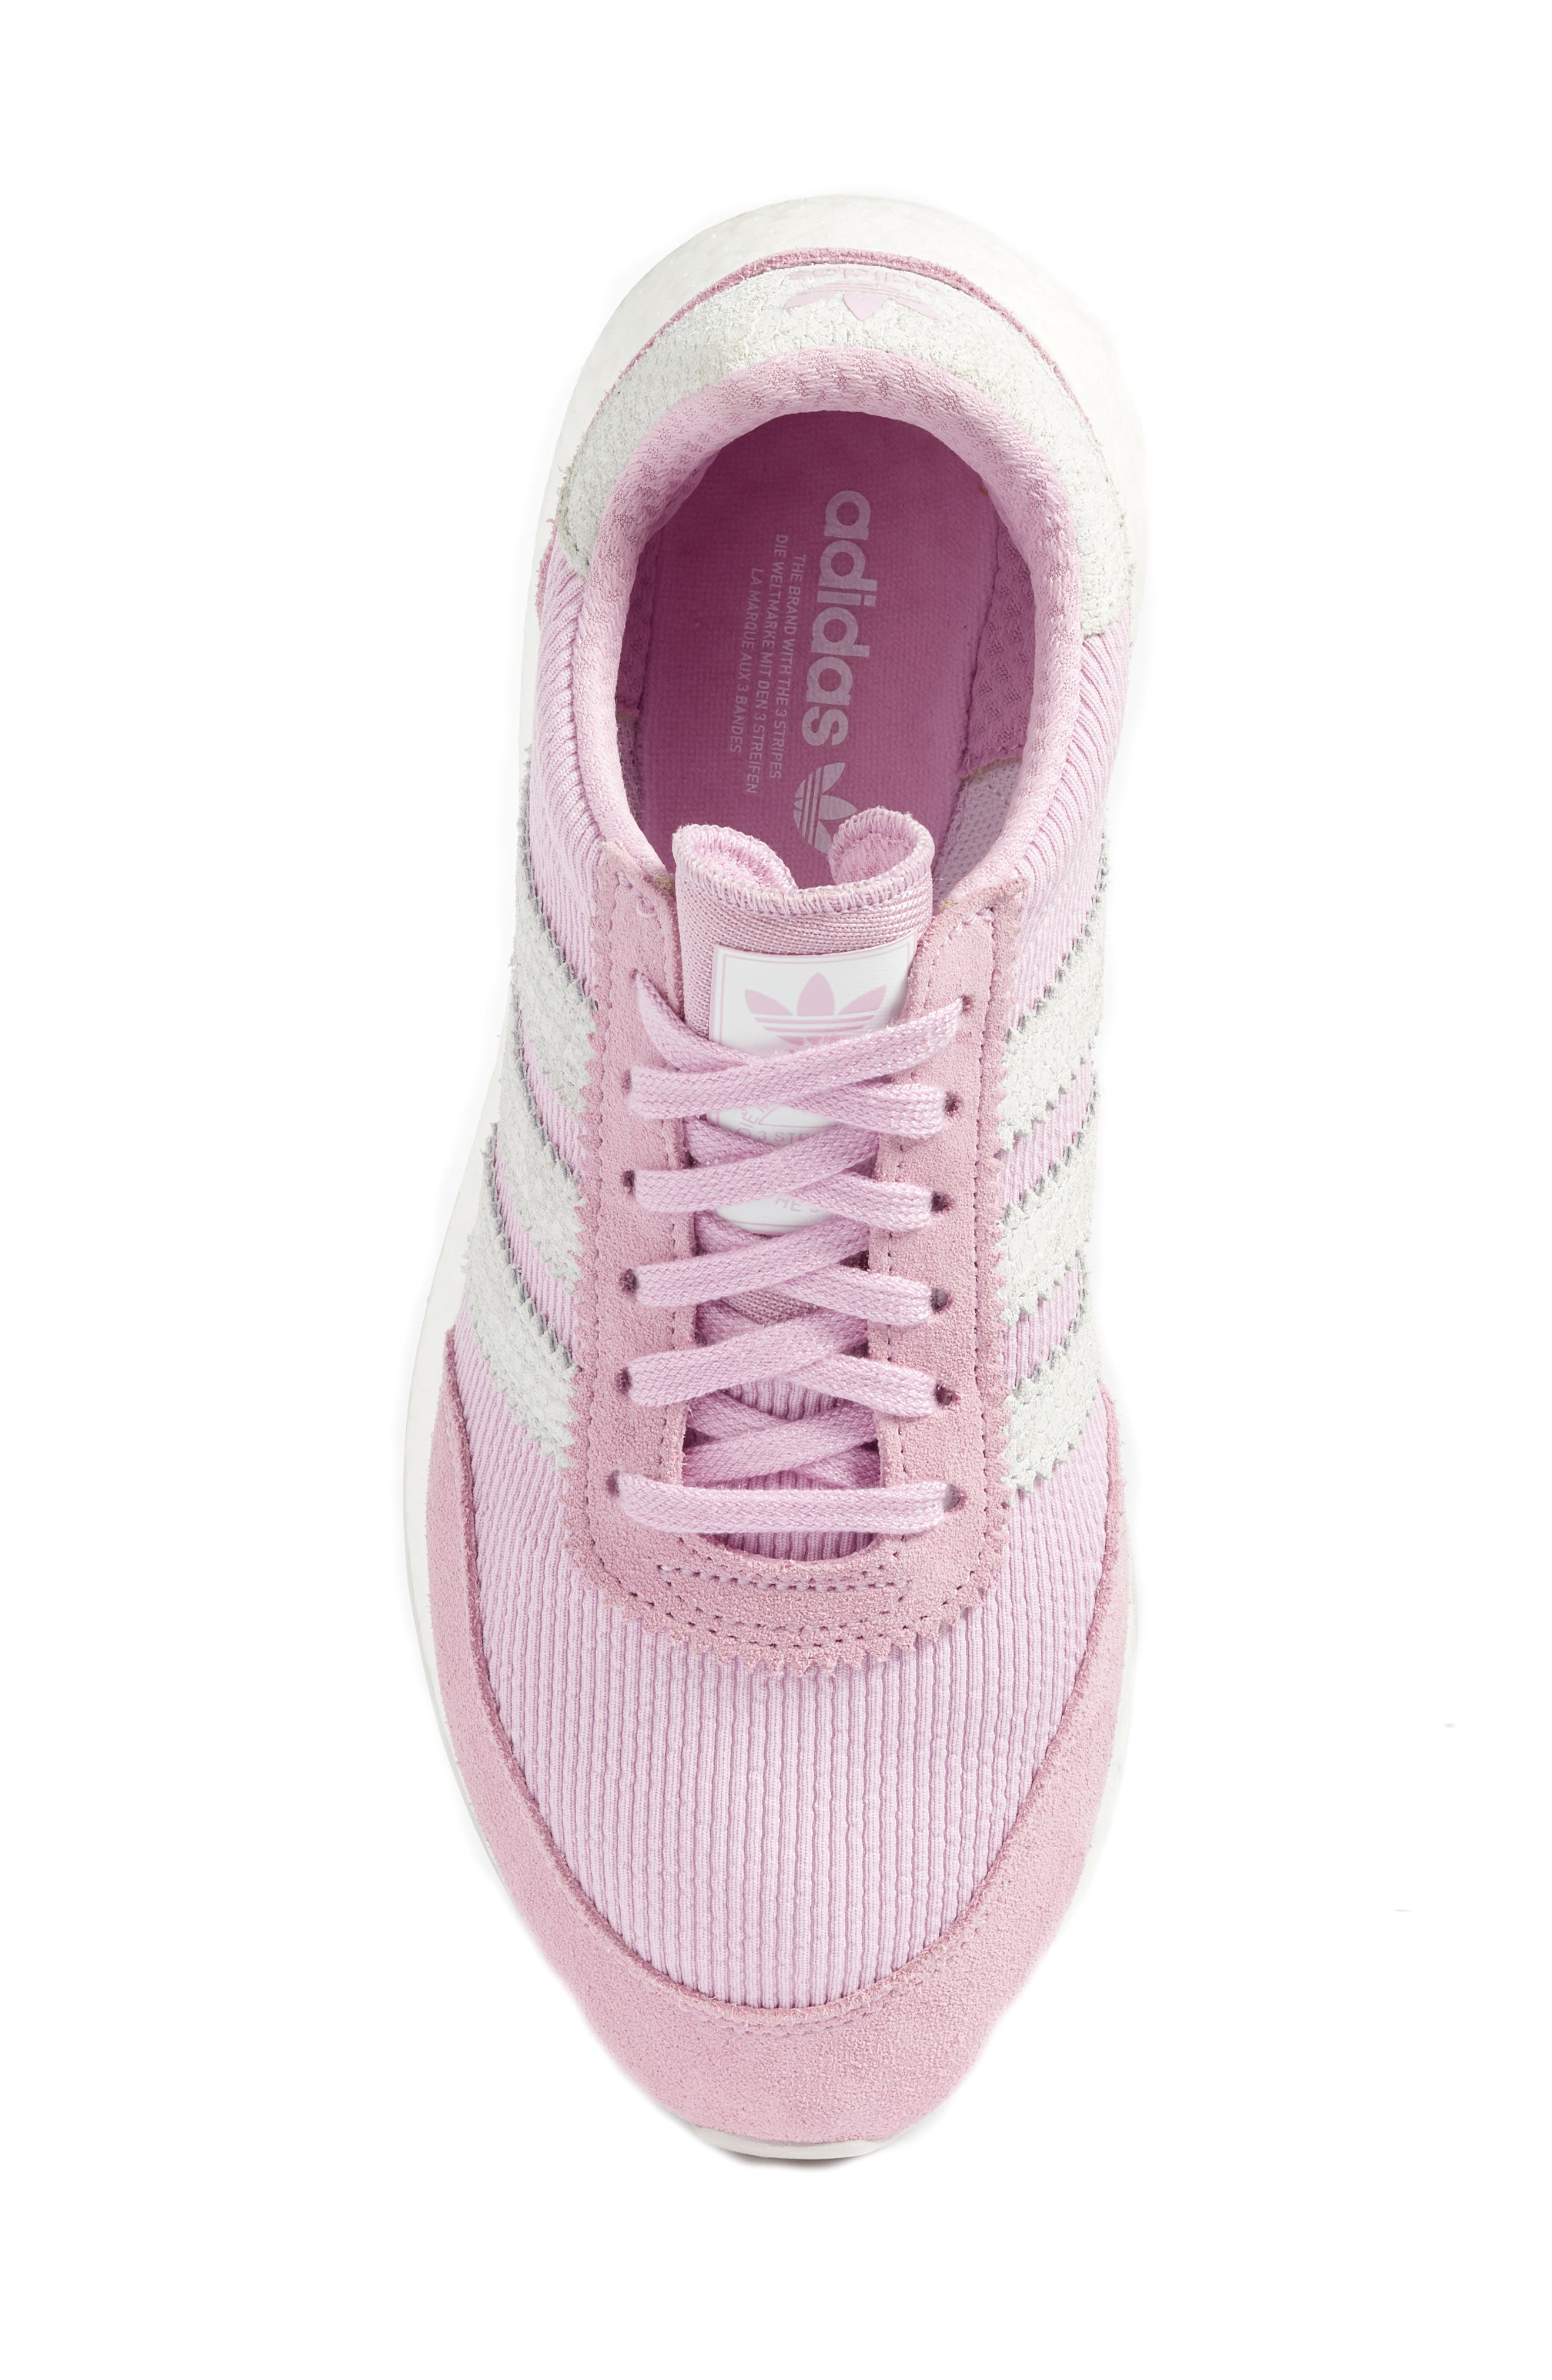 I-5923 Sneaker,                             Alternate thumbnail 5, color,                             CLEAR LILAC/ WHITE/ GREY